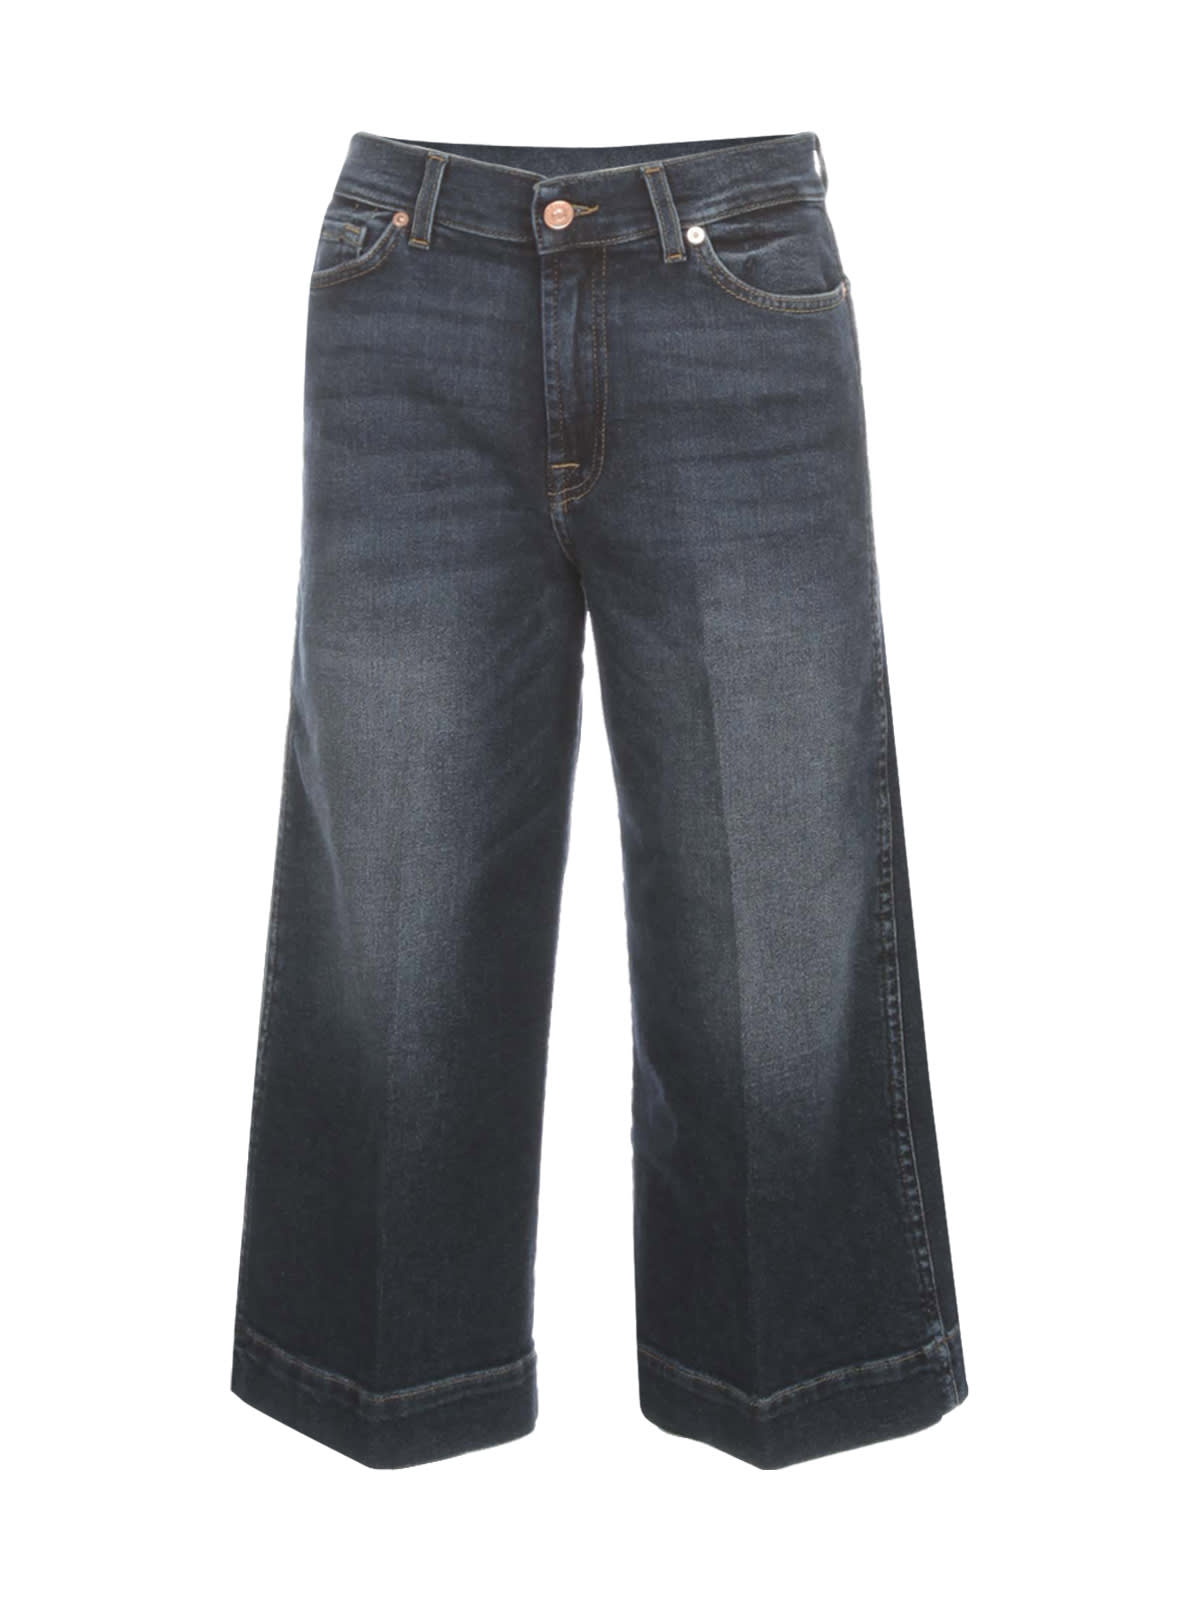 7 For All Mankind CULOTTE LUXE VINTAGE RIGH ONE